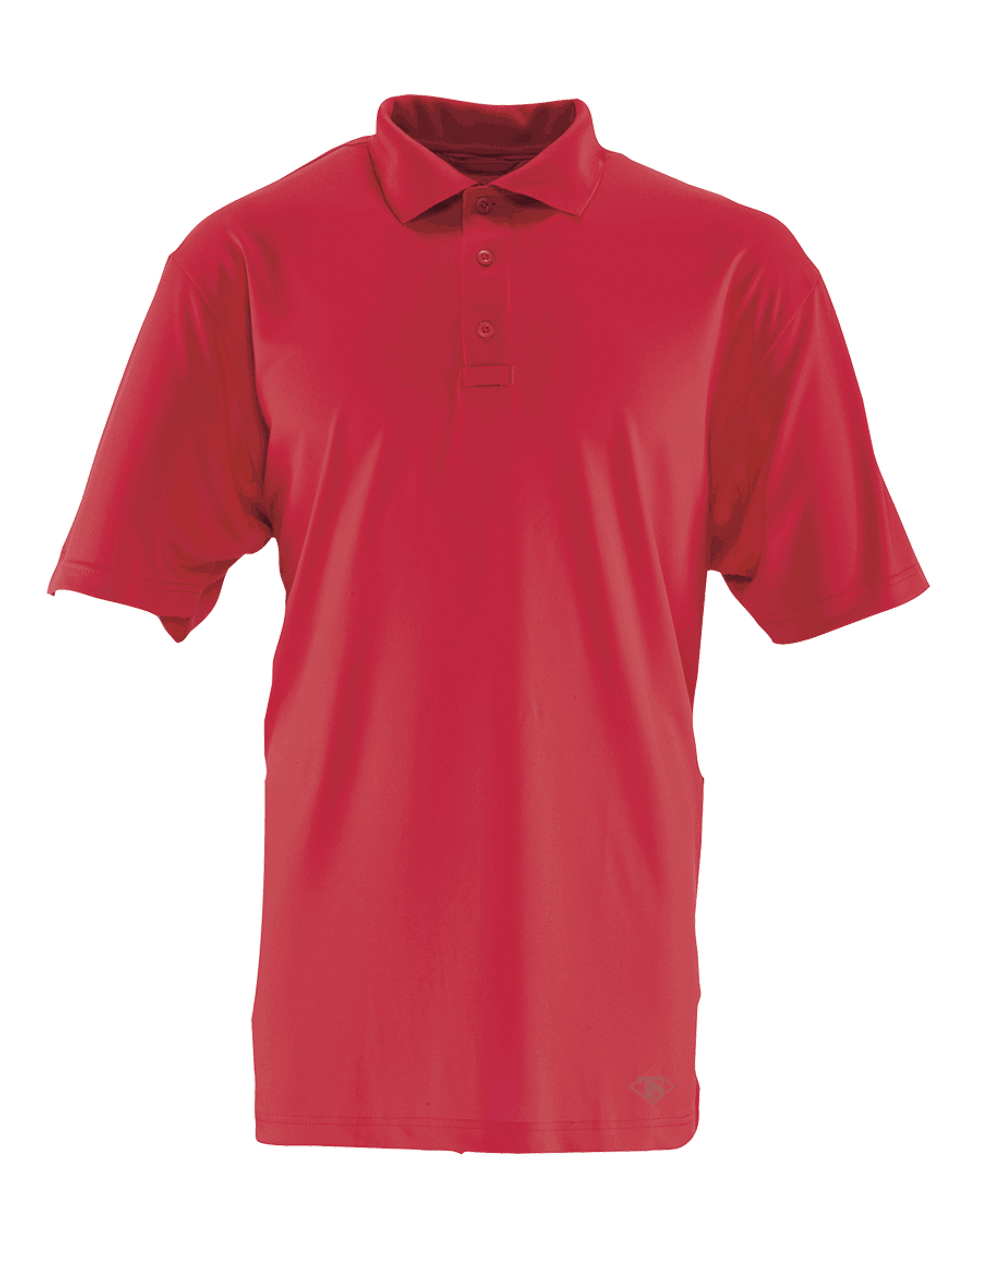 Tru-Spec TS-4336 24-7 Series Men's Short Sleeve Performance Tactical Polo, No-Curl Collar, 100% Polyester, For Uniform or Casual use, Vented Fabric in Arm Pit Area, Sternum Mic Loop